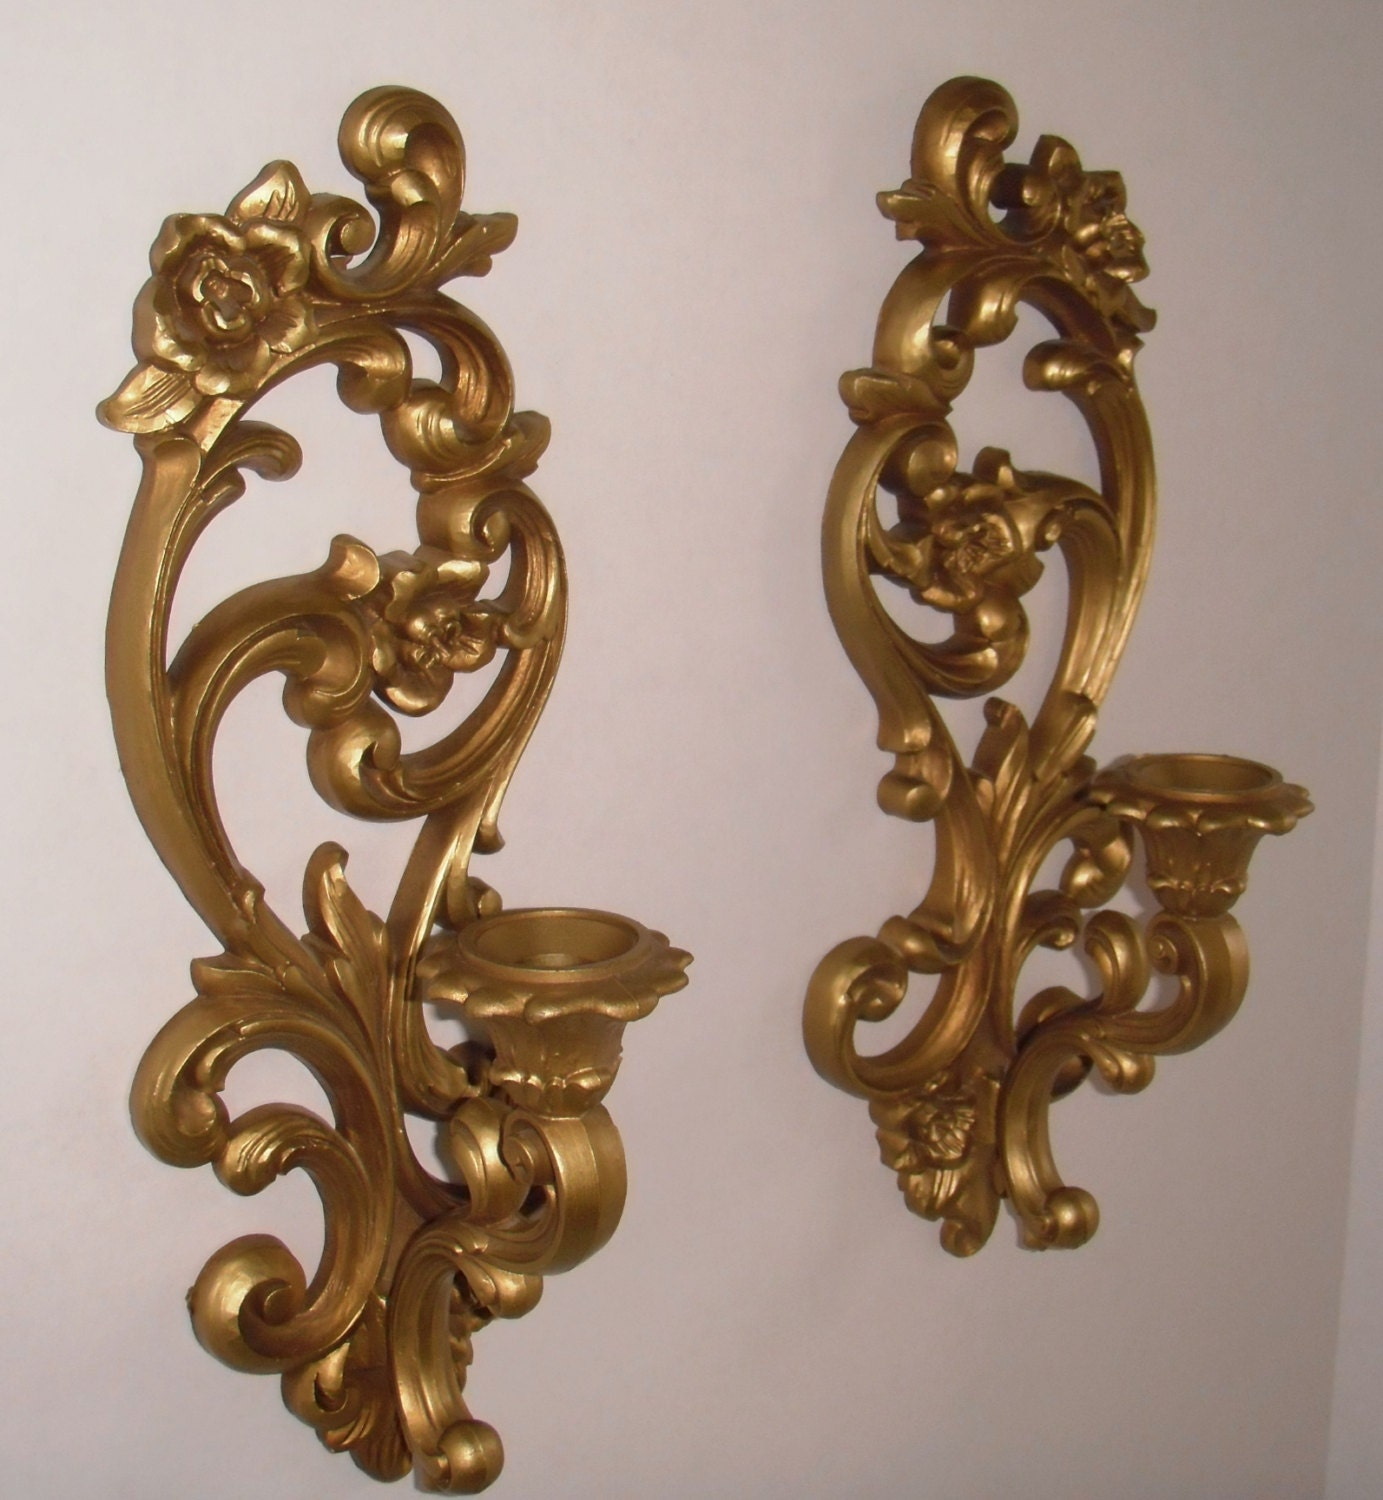 Gold Candle Wall Lights : Gold Tone Homco Wall Sconce Candle Holder Set 1971.